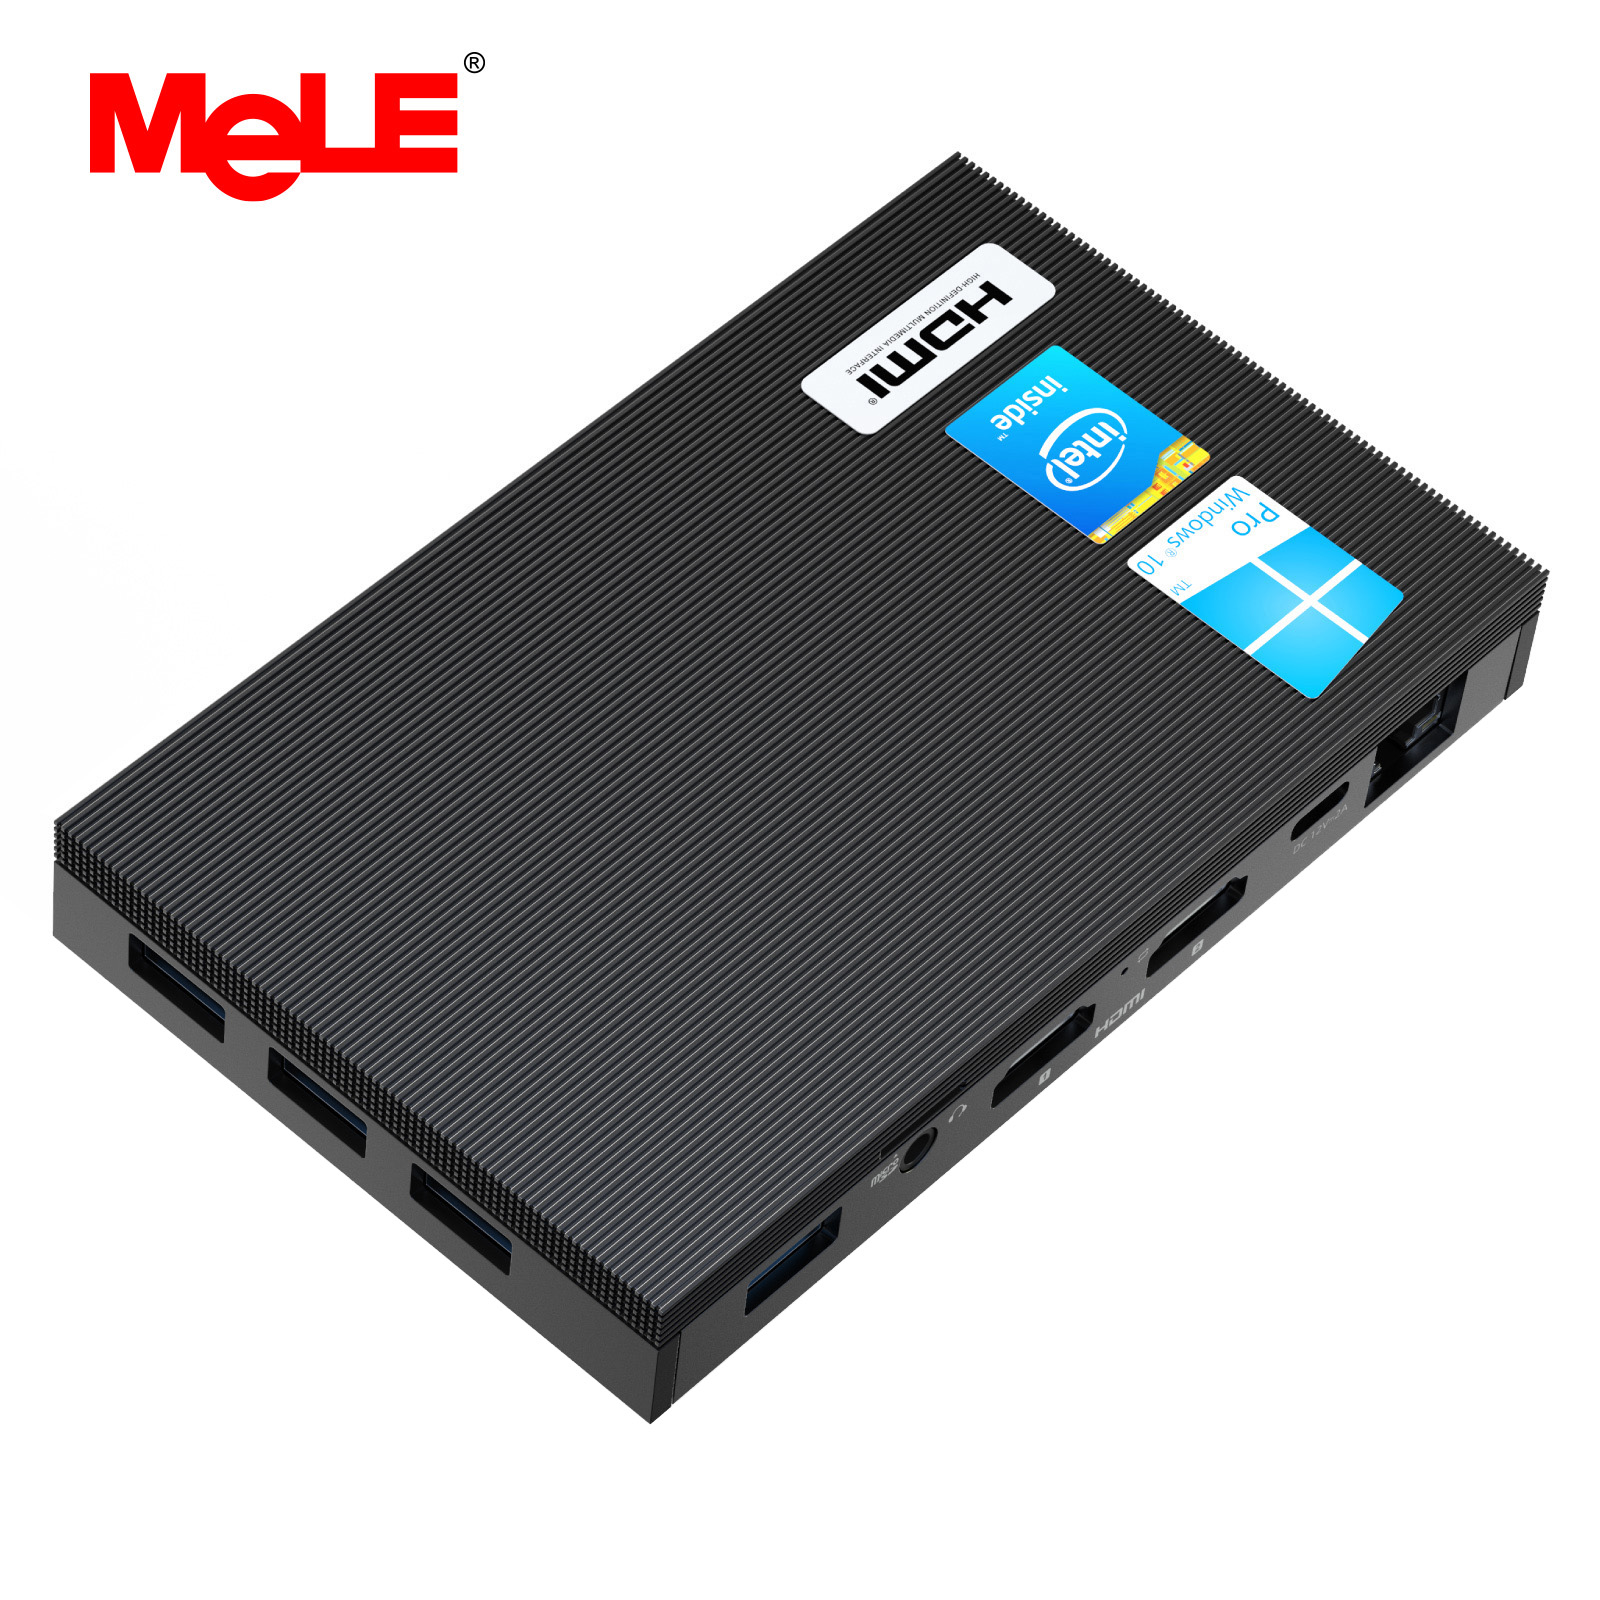 MeLE Fanless 4K Mini PC Intel Celeron J4125 Quad Core 8GB 128GB Windows 10 Desktop Computer Dual HDMI 2.4G/5G Dual-band WiFi SSD